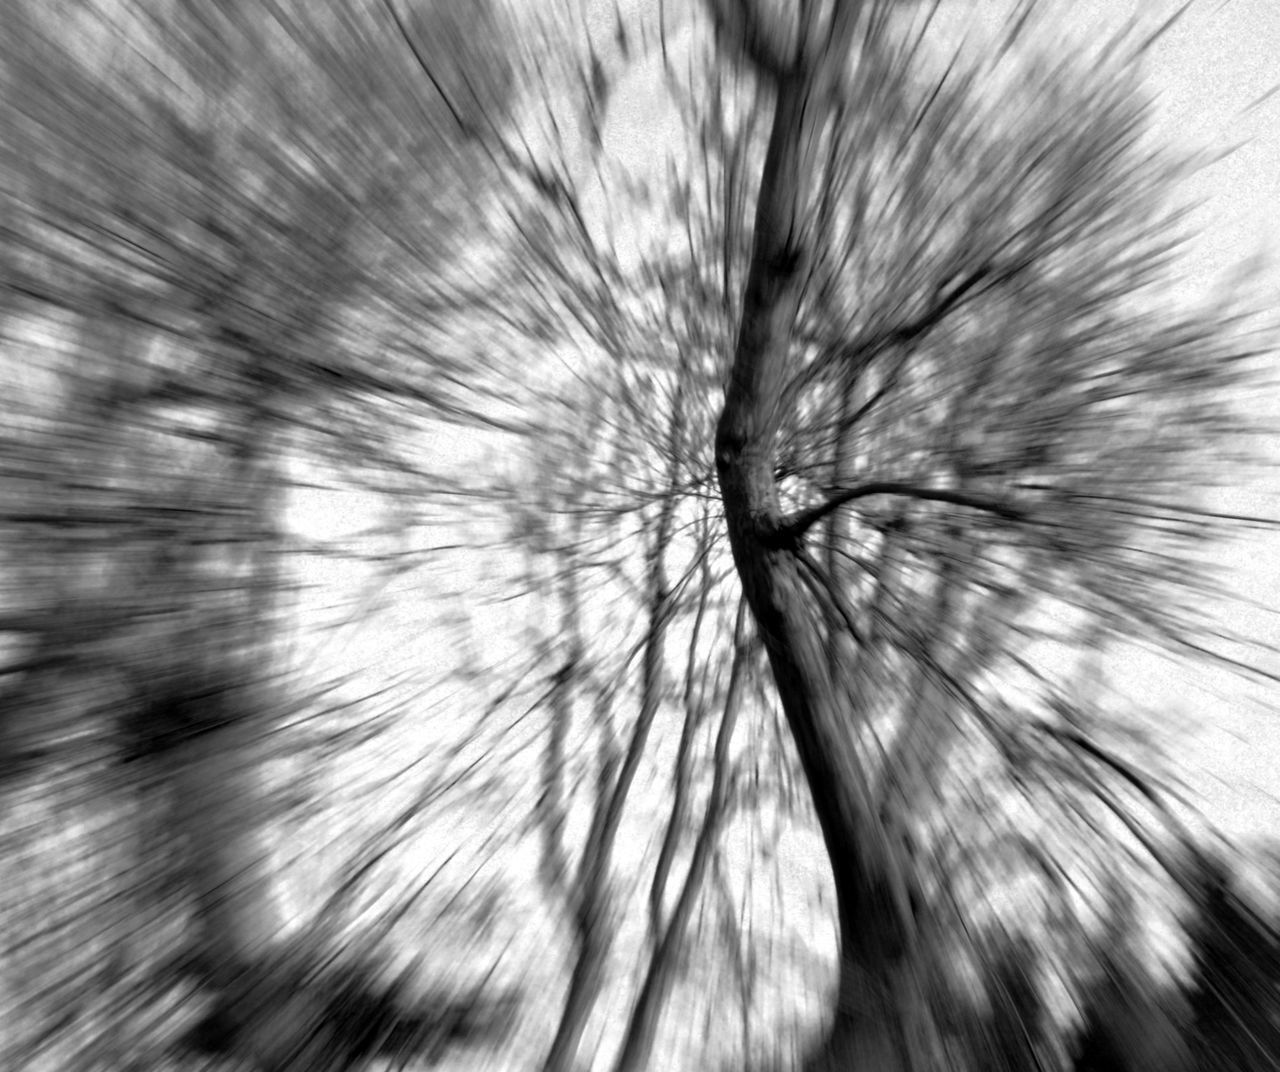 Spooky Photography Taking Photos Blackandwhite Photography Black & White Hounted Trees